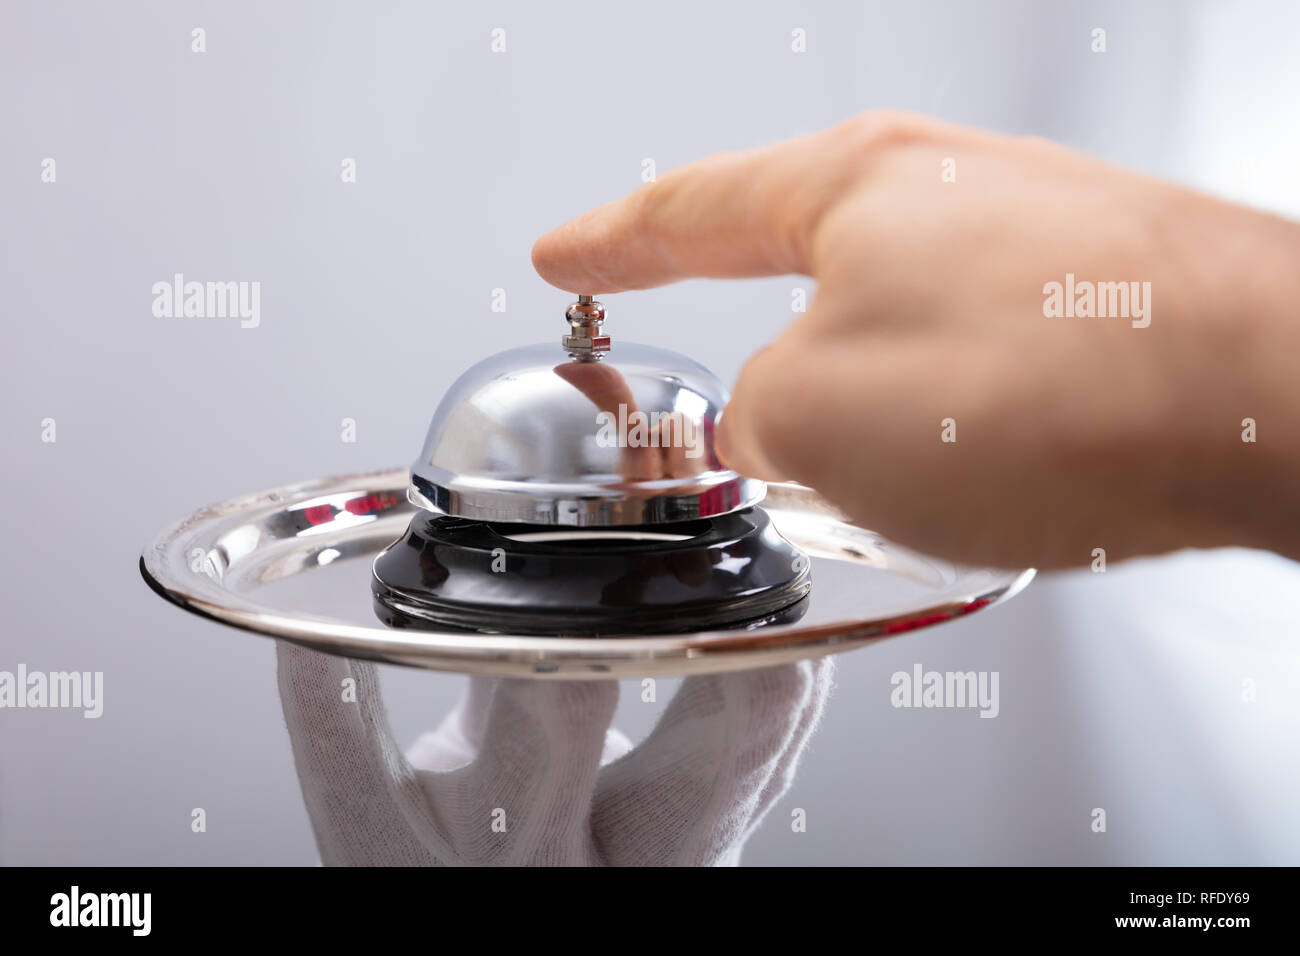 Close-up Of Person's Hand Ringing Service Bell On Plate Held By Waiter - Stock Image